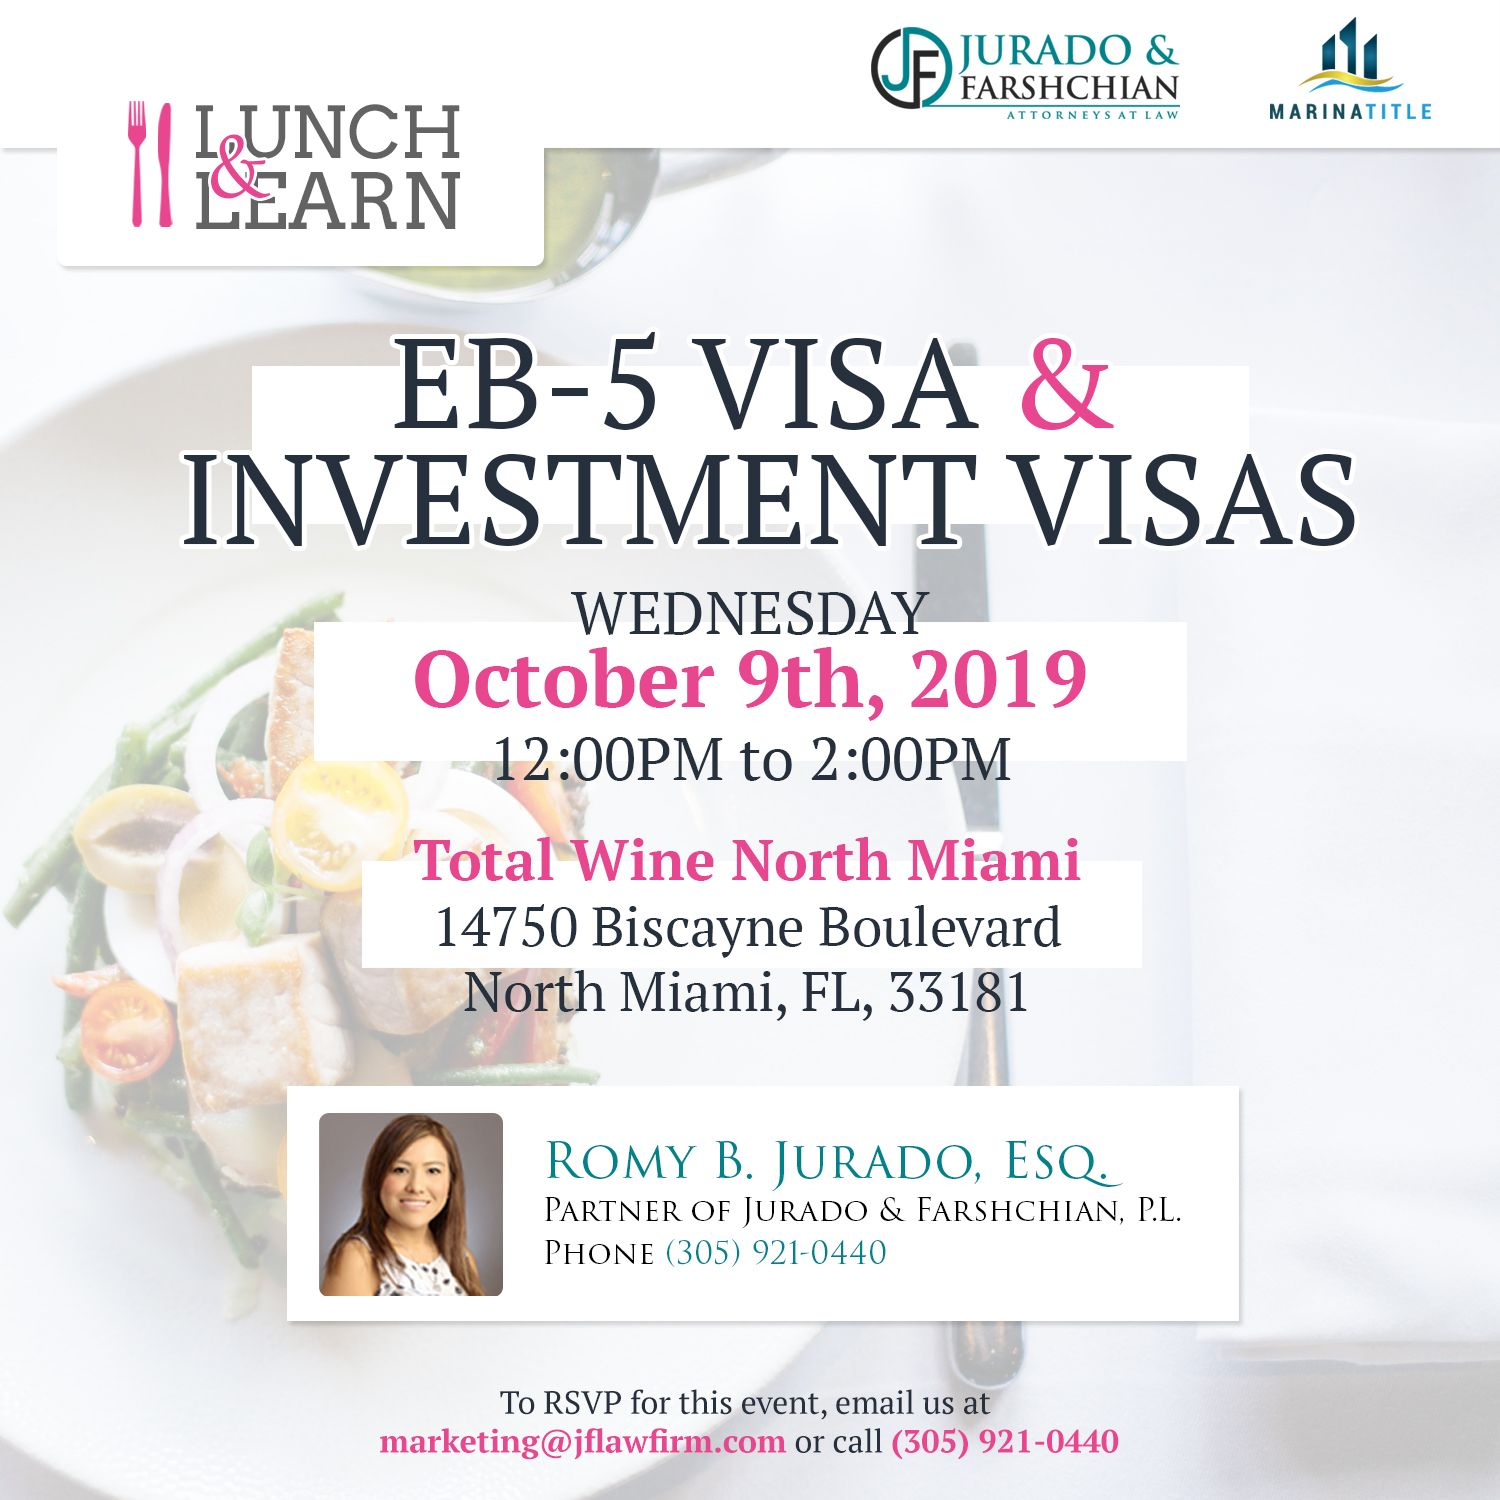 The eb5 visa is a way to help your clients obtain their